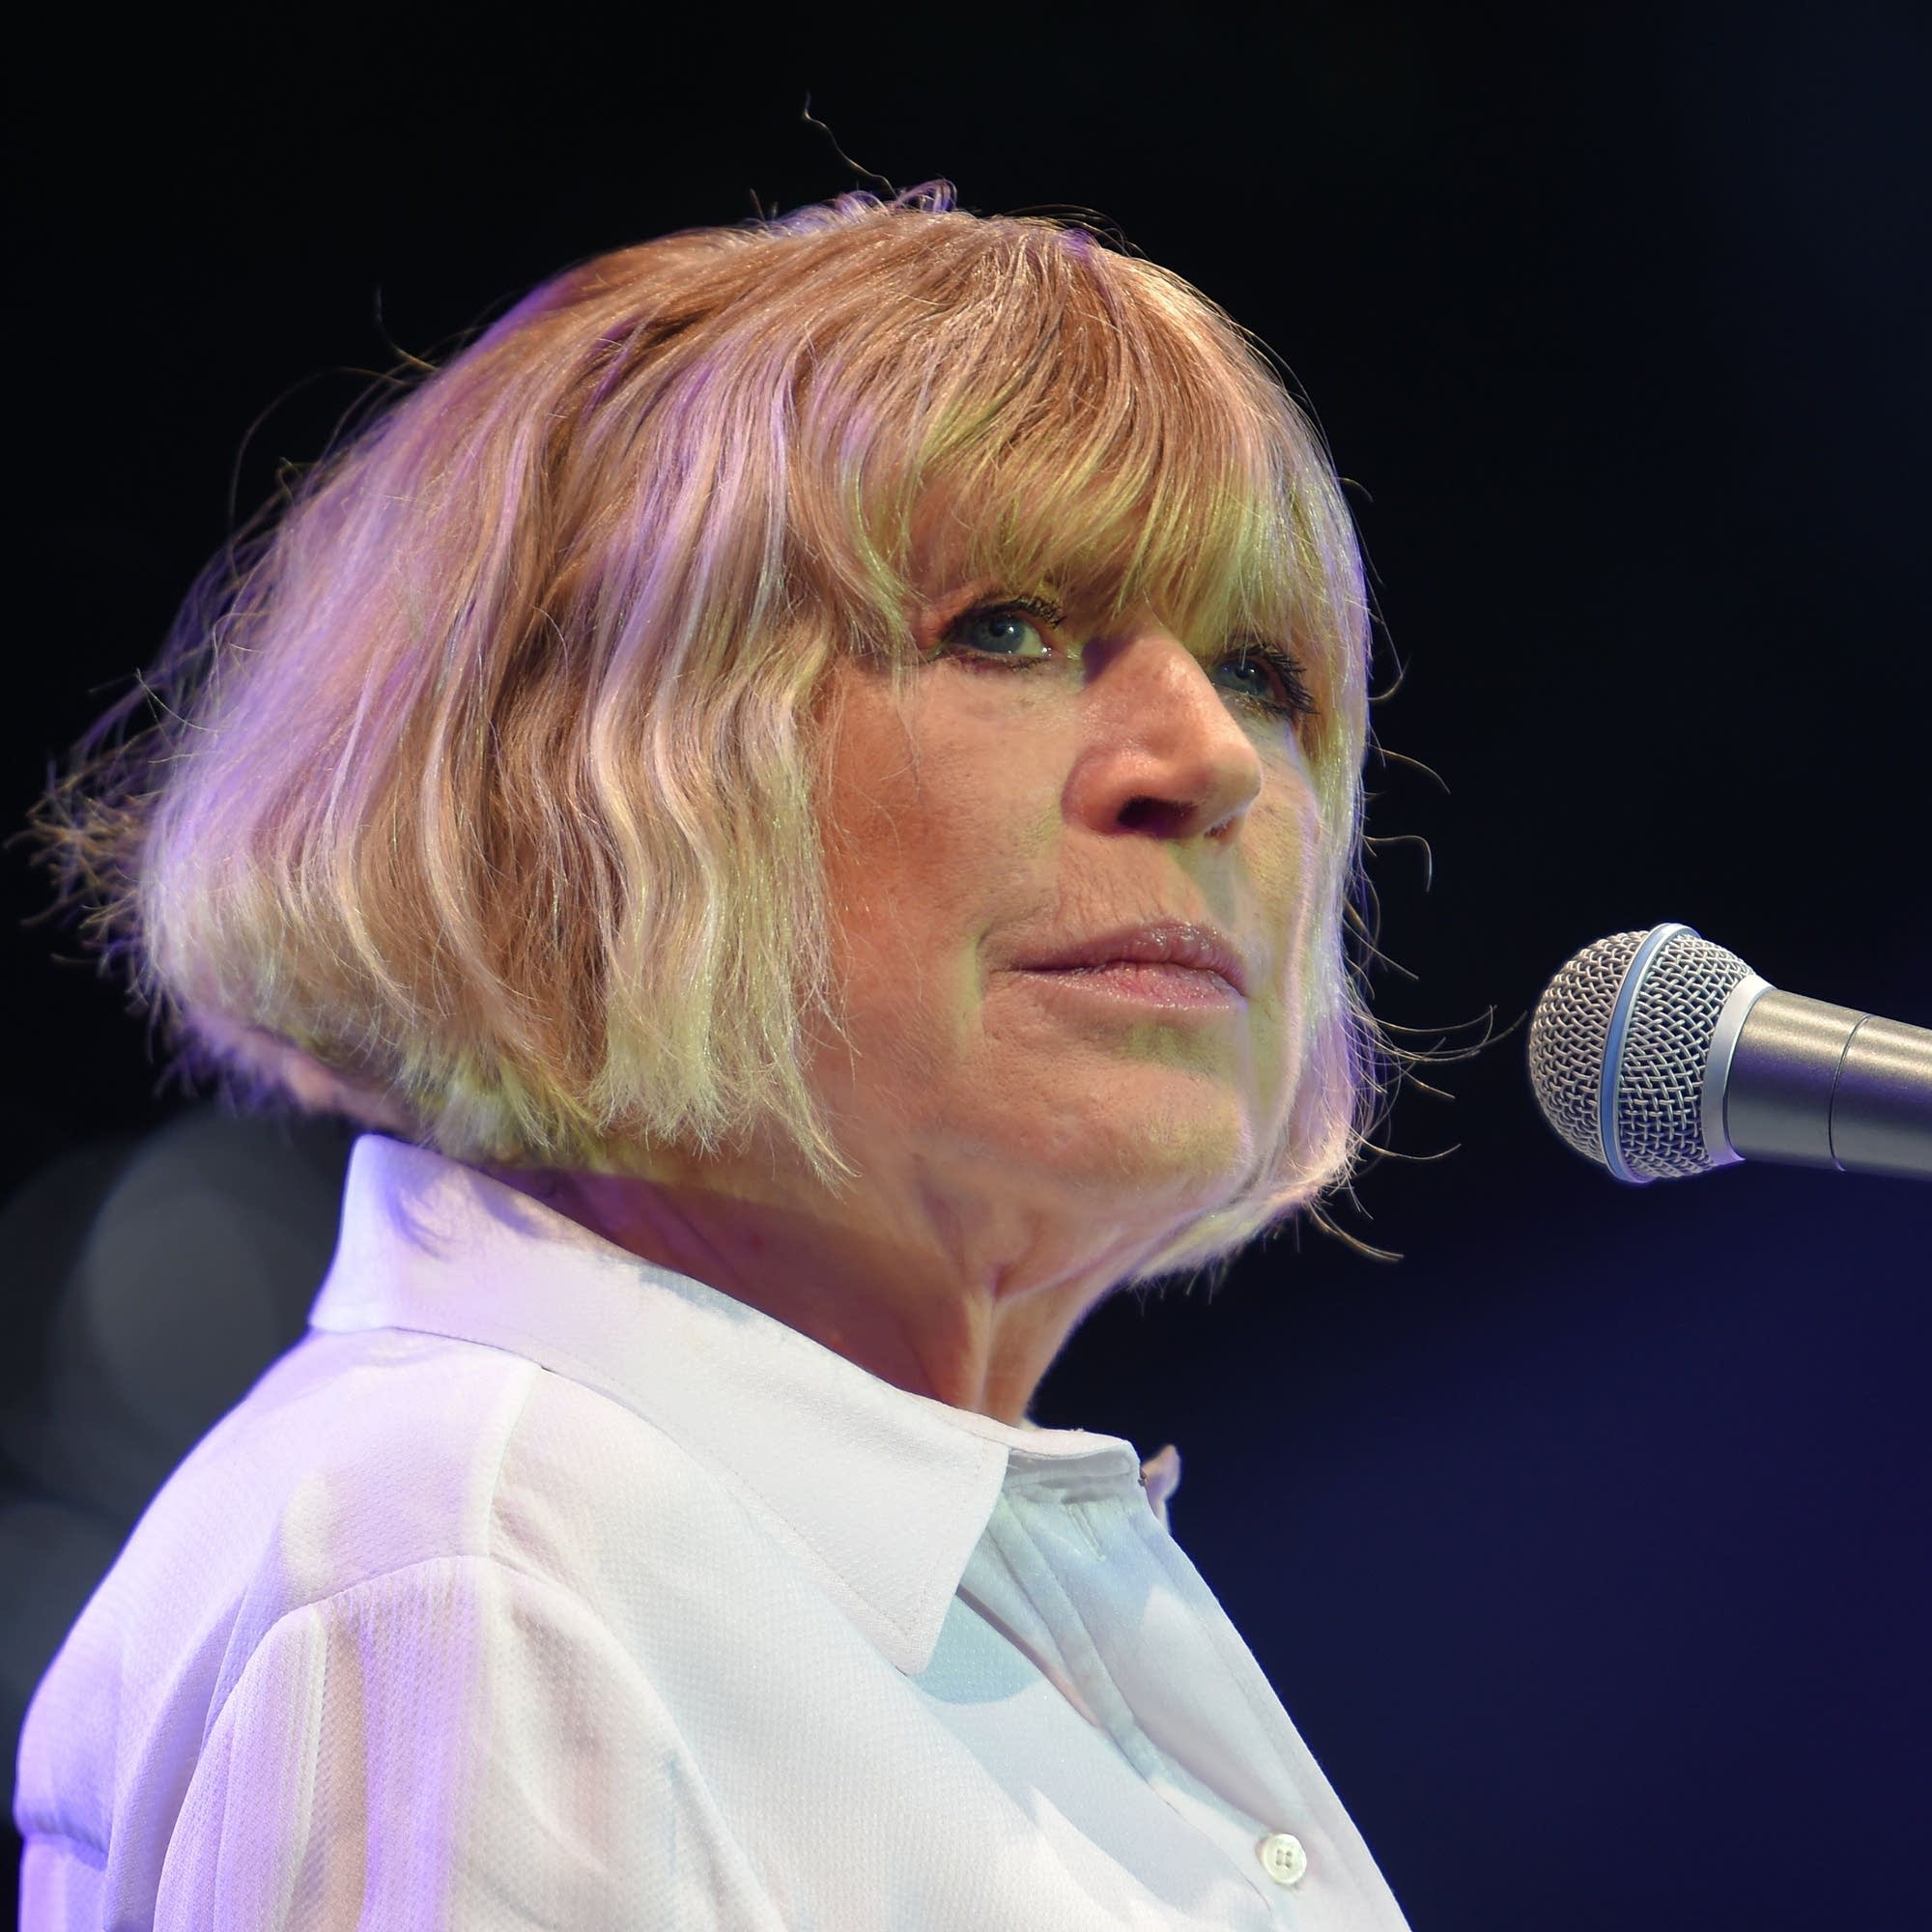 Marianne Faithfull onstage in France, 2016.